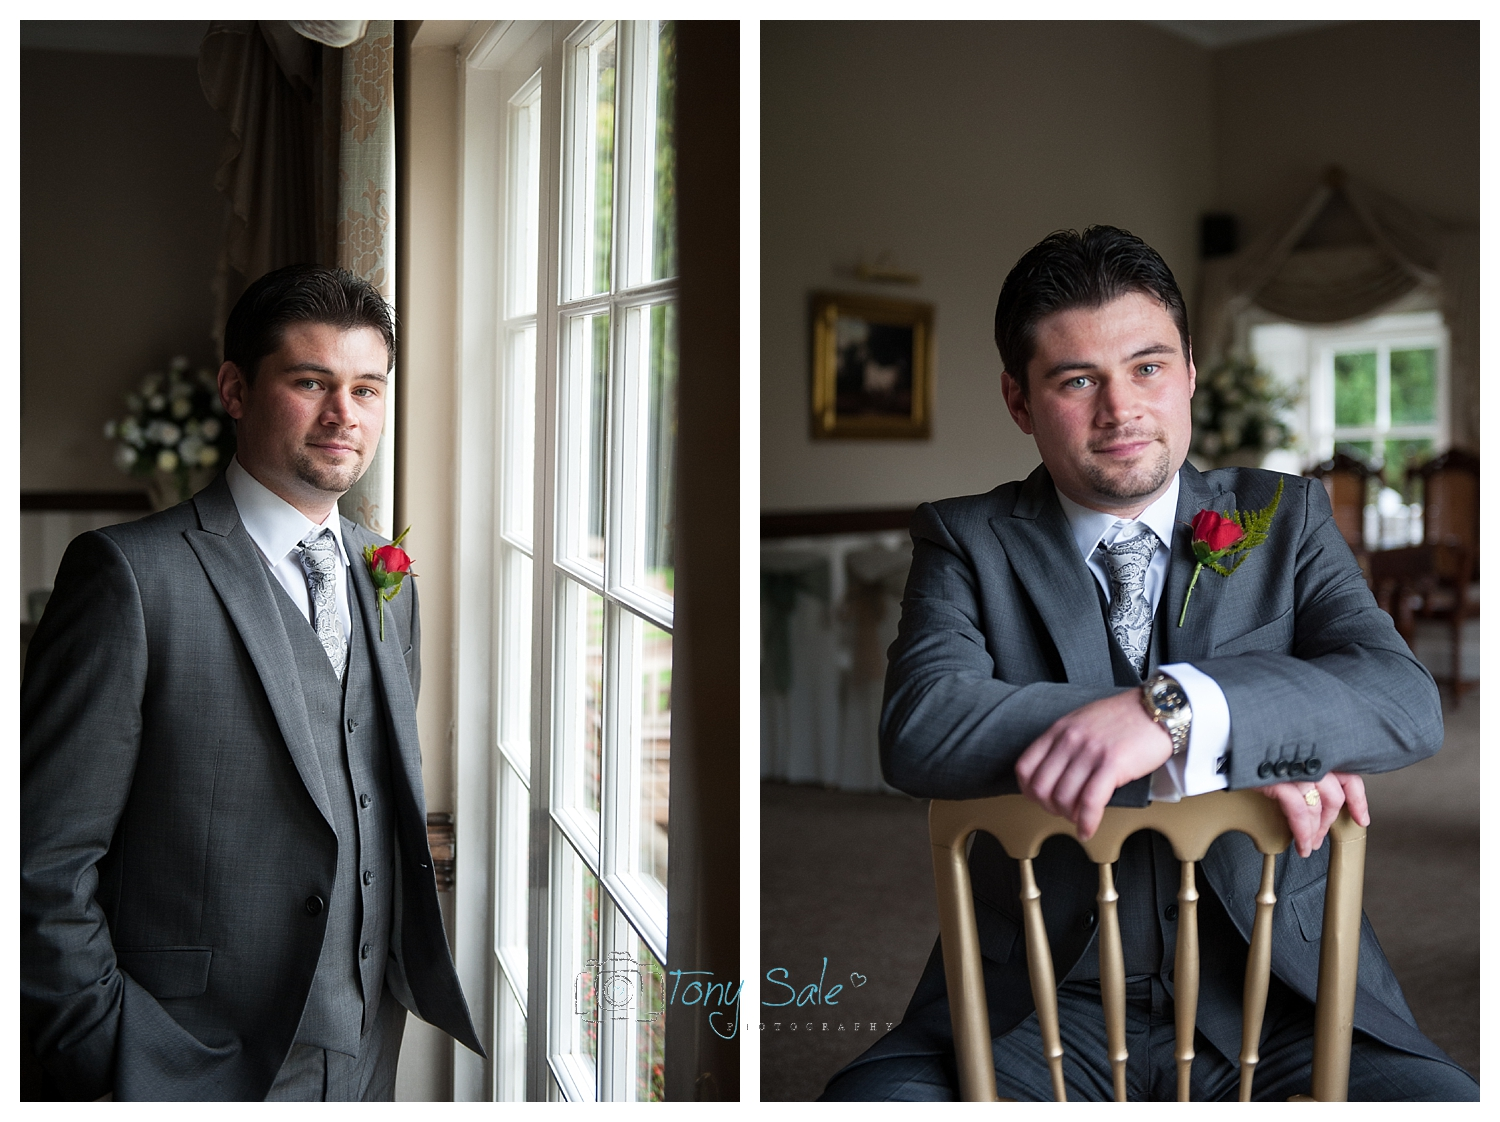 wedding-photography-portrait of the groom